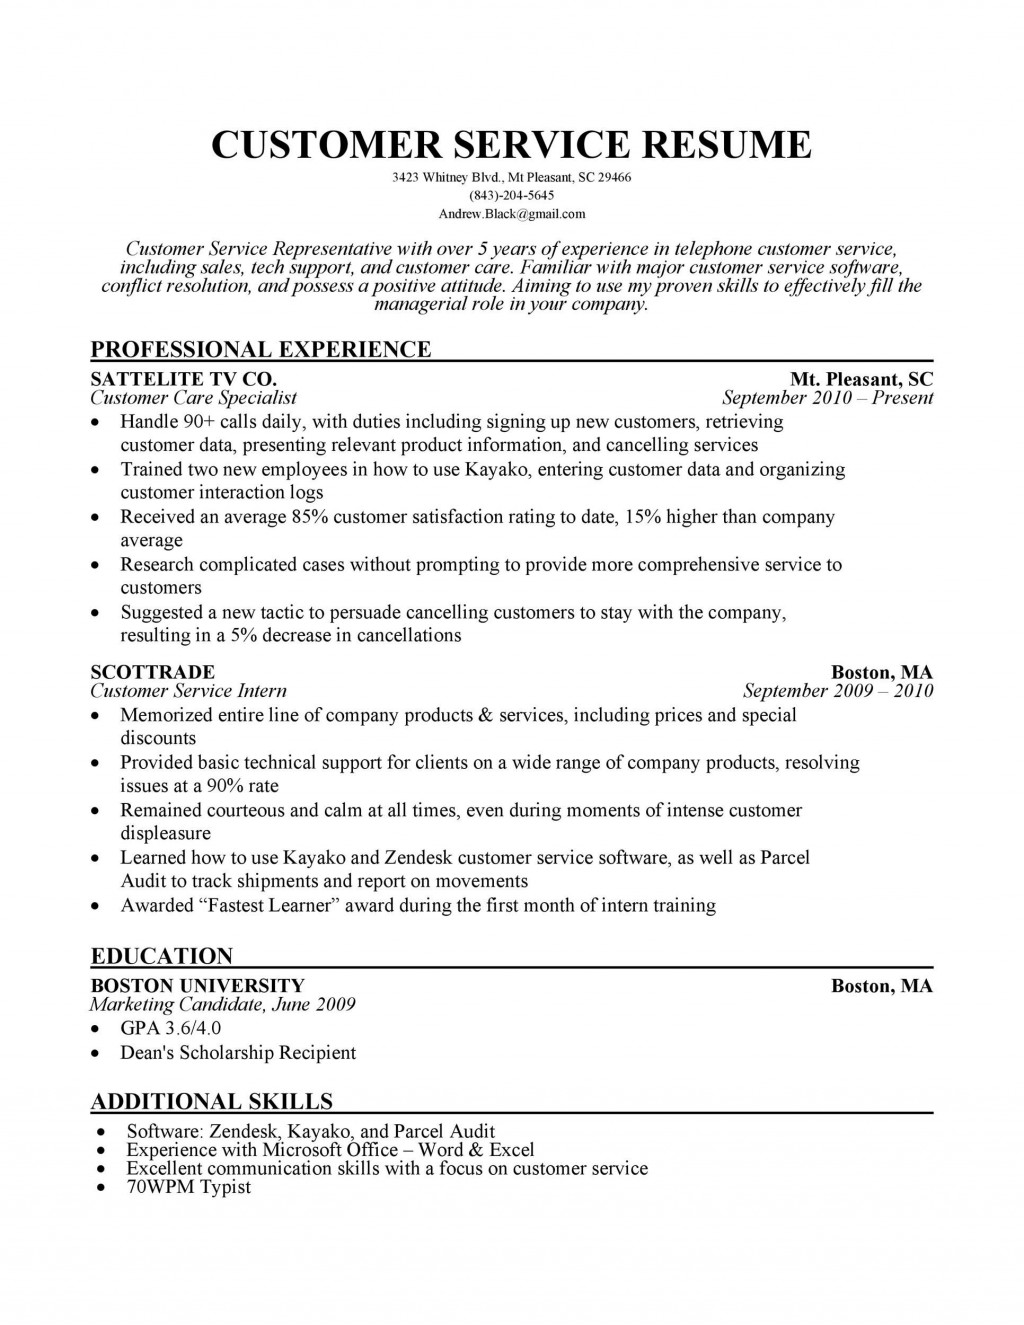 007 Impressive Customer Service Resume Template Idea  CvLarge